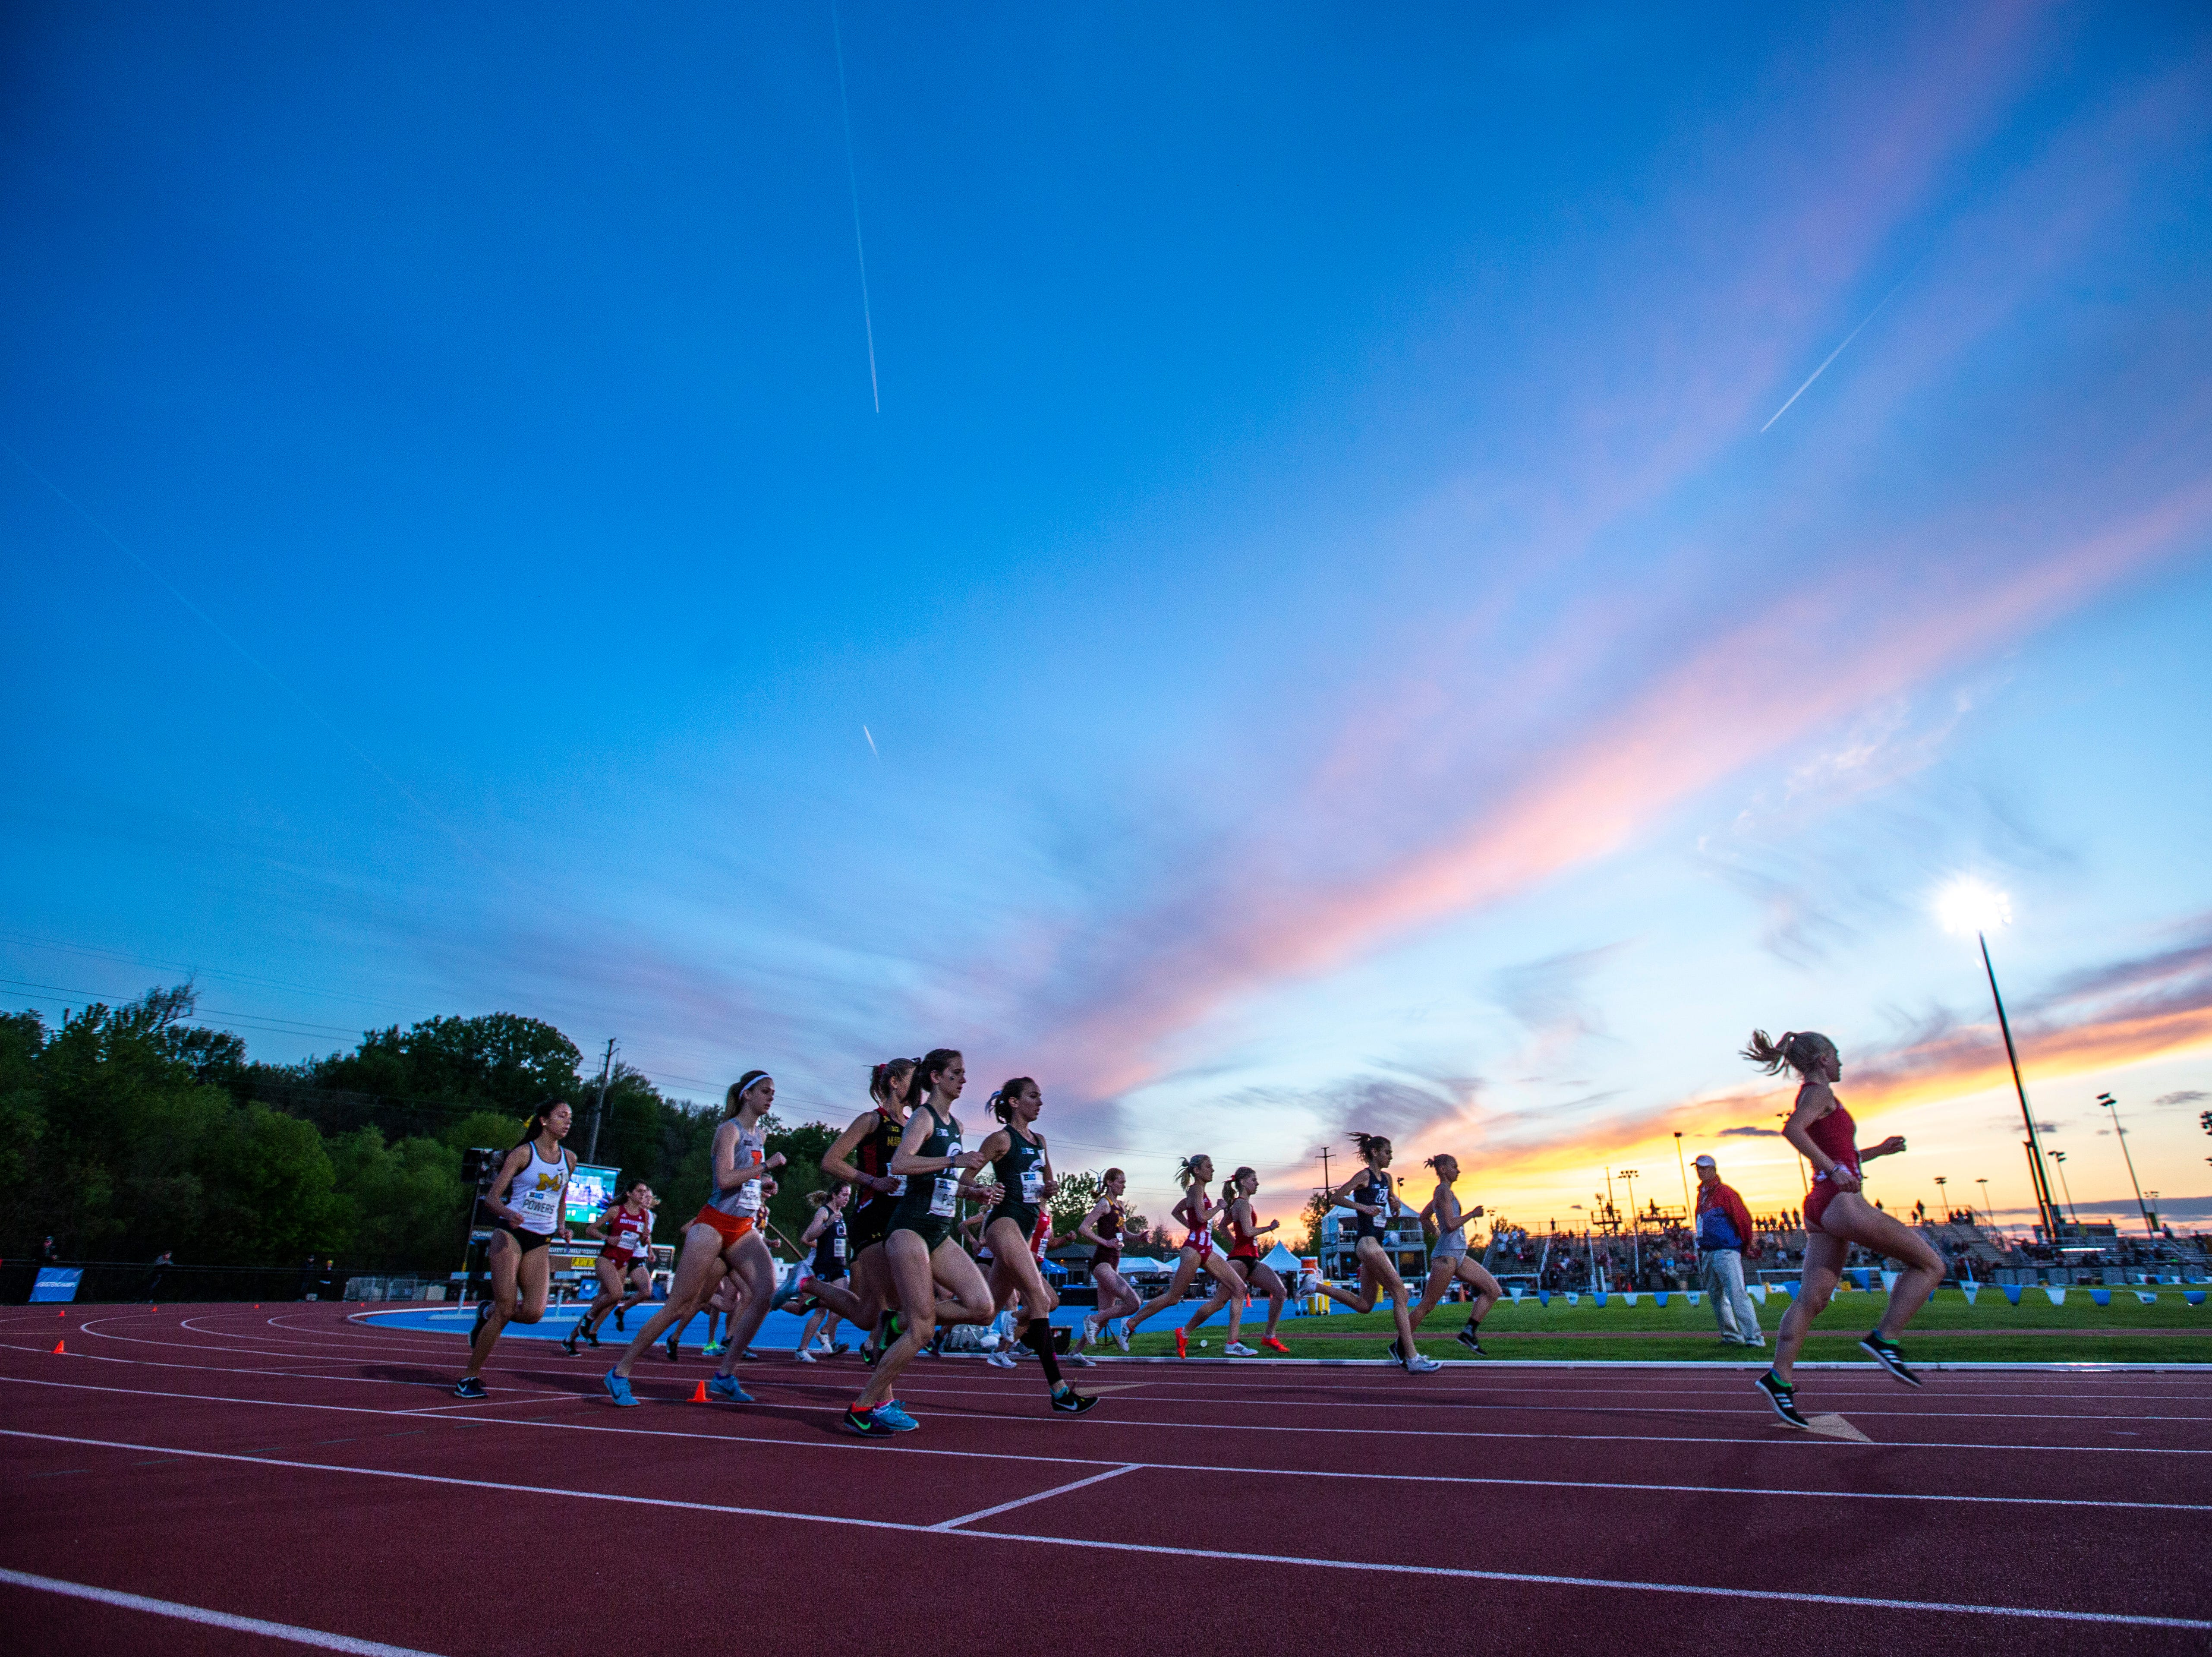 Indiana redshirt senior Katherine Receveur leads the pack in the women's 10,000 meter during the first night of Big Ten track and field outdoor championships, Friday, May 10, 2019, at Francis X. Cretzmeyer Track on the University of Iowa campus in Iowa City, Iowa. Indiana senior Margaret Allen finished with a time of 33:08.59.